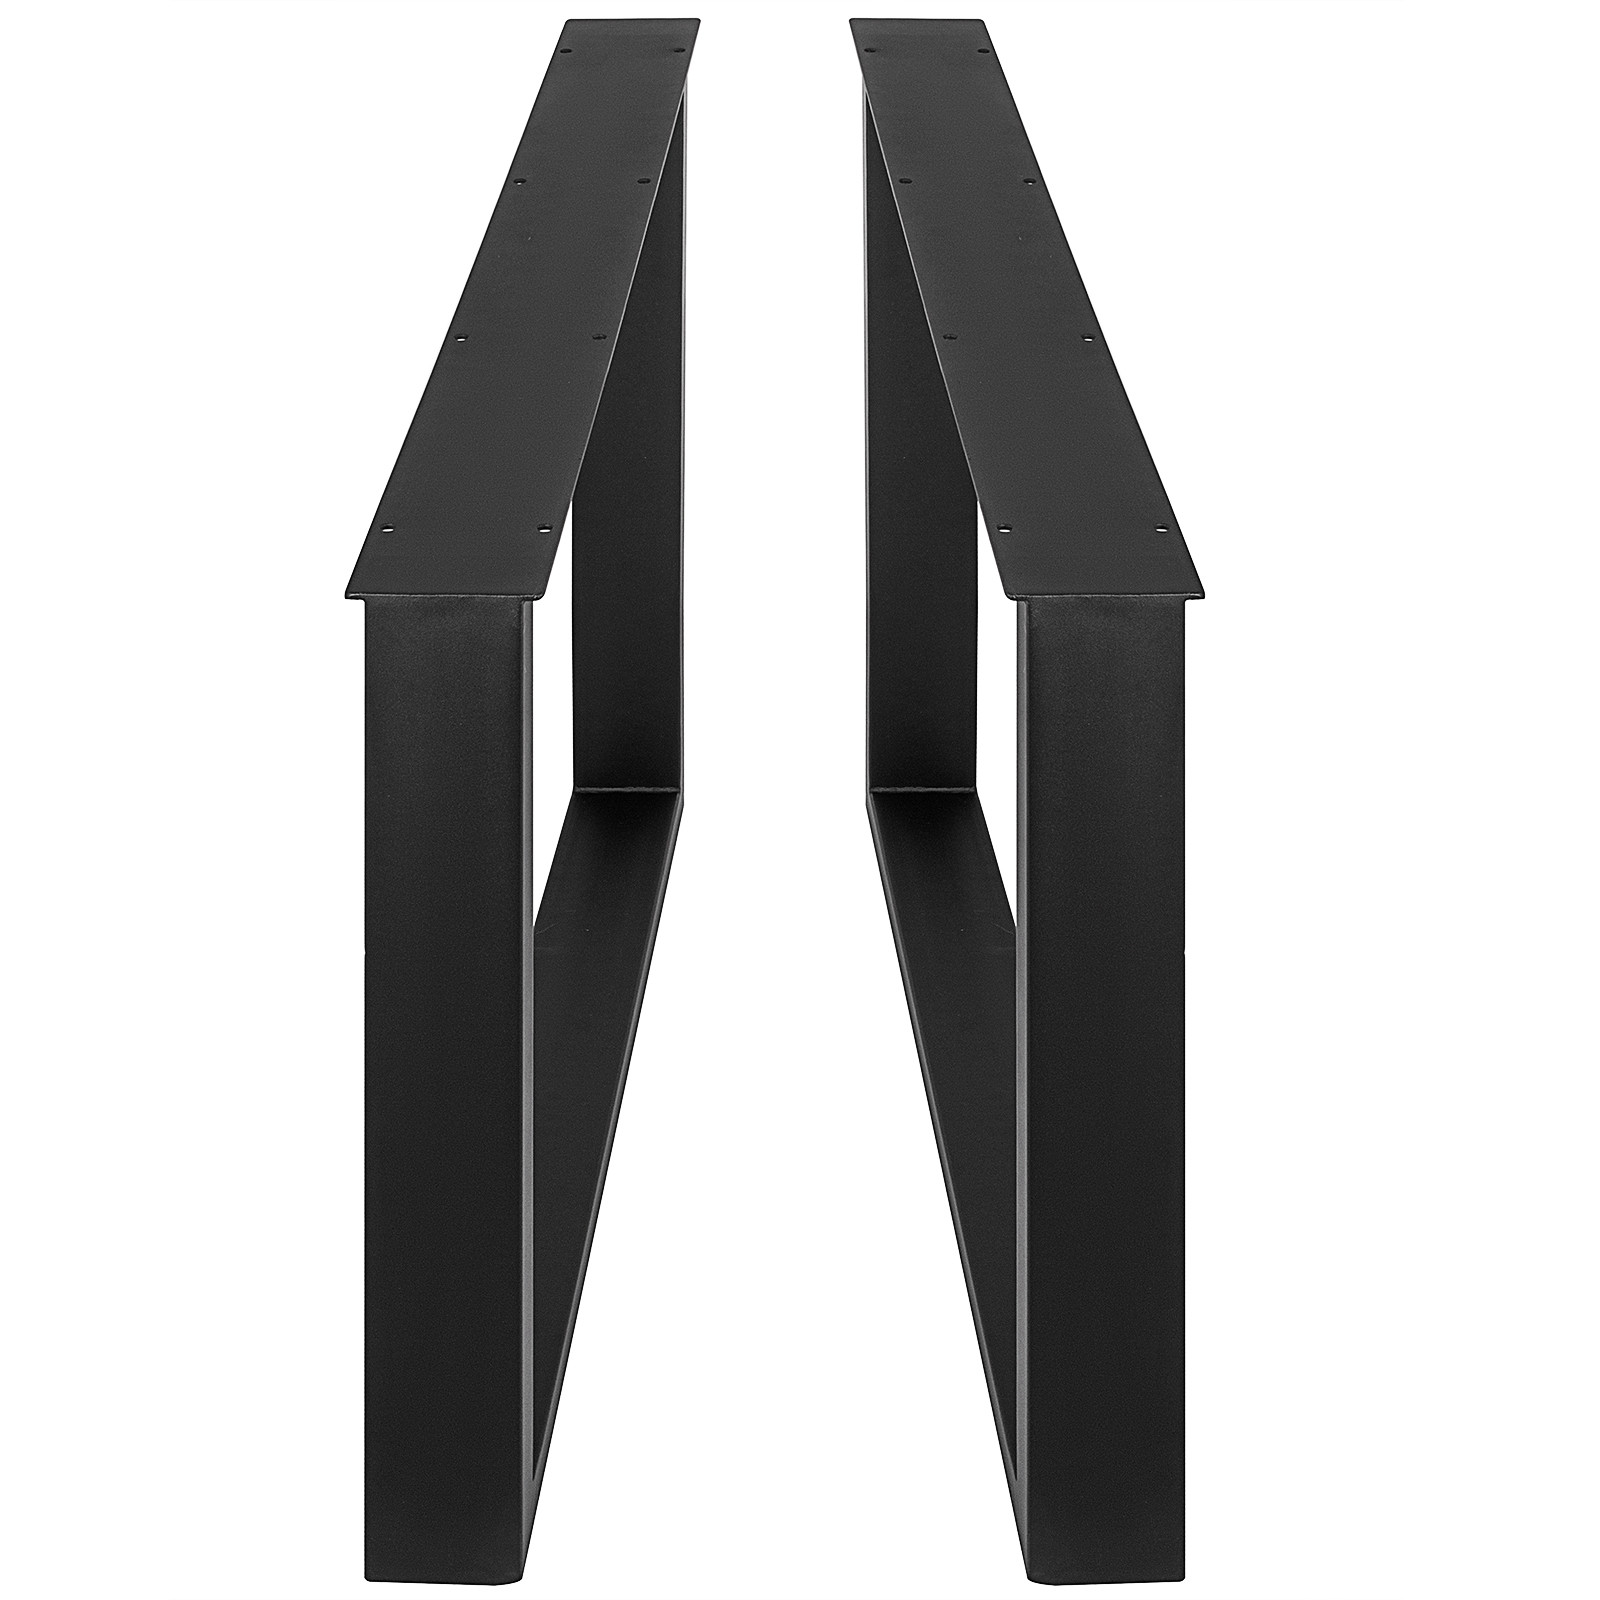 2X-Table-Legs-Black-Dining-Table-Leg-Heavy-Duty-Computer-Desk-Legs-Rectangle thumbnail 53